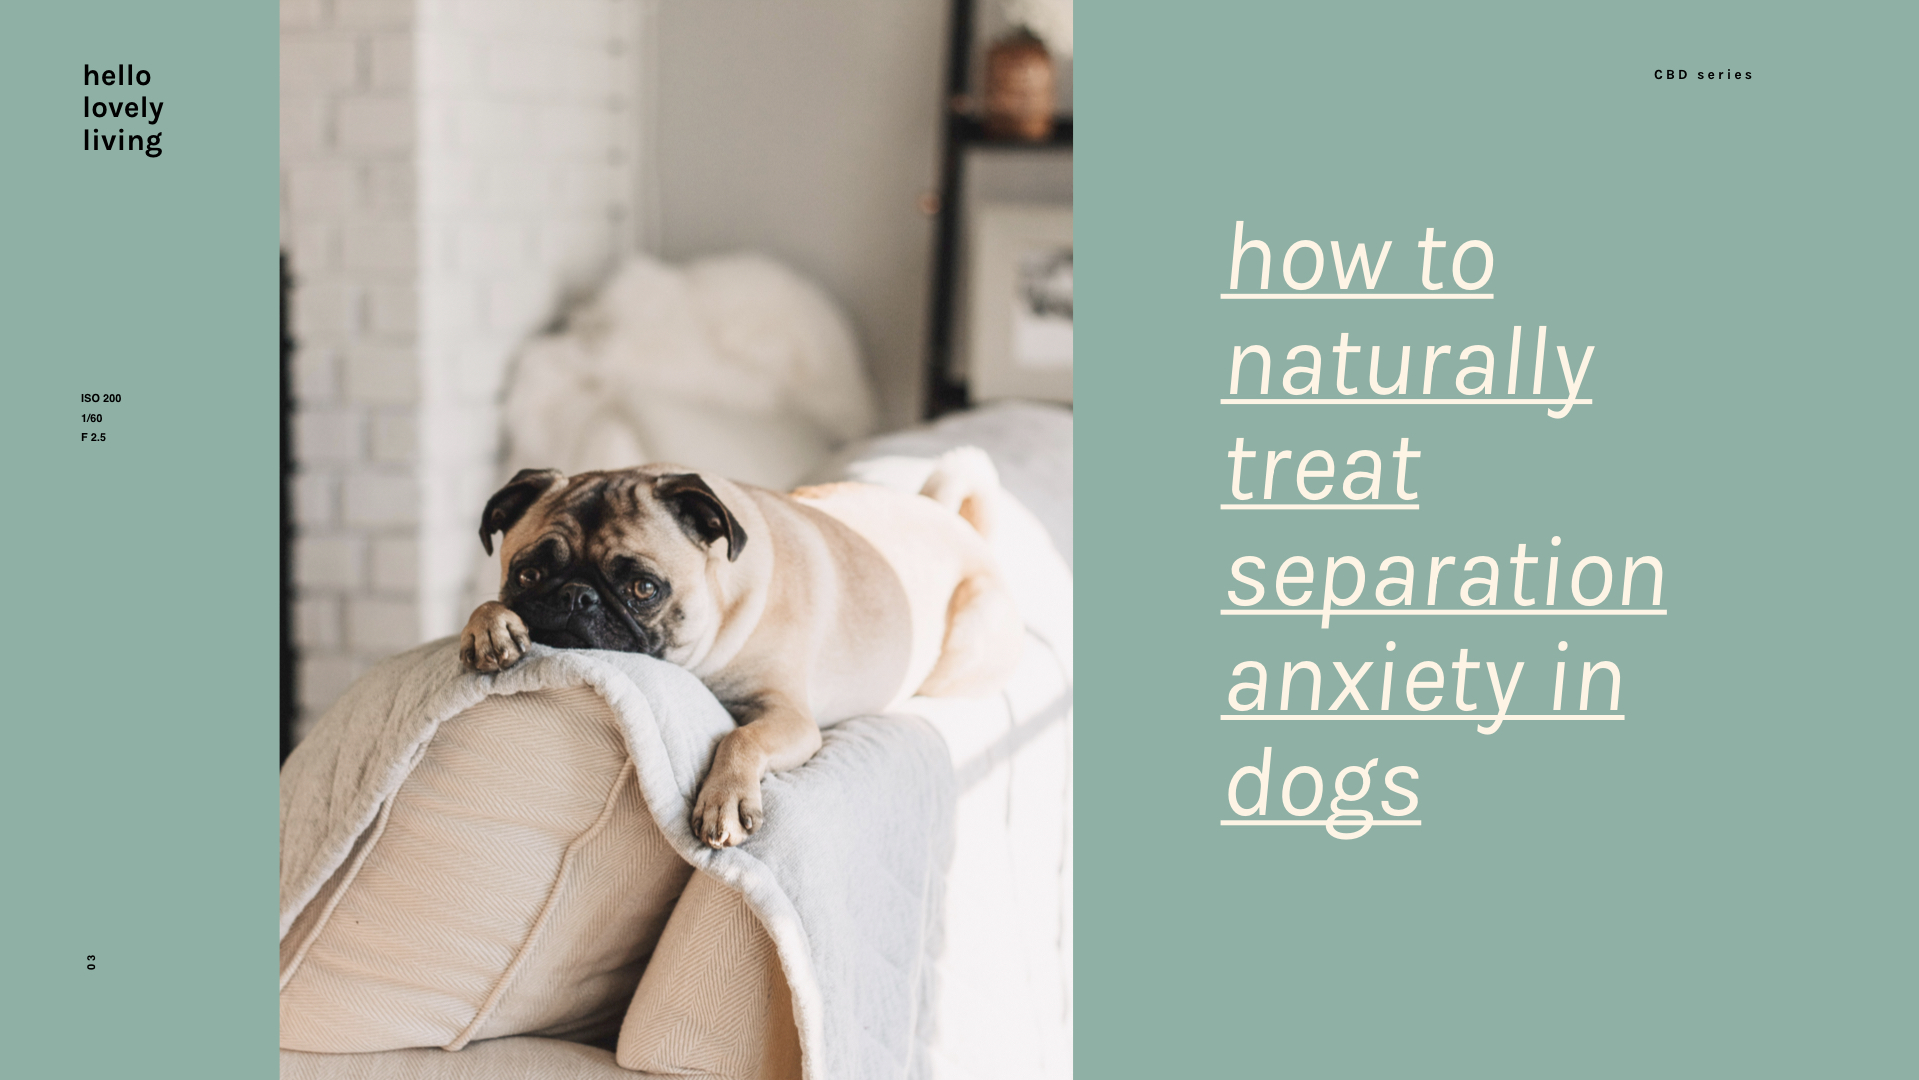 hellolovelyliving.com | CBD Series Part 3 | Your Dog Can Benefit From CBD Oil Too? CBD for pets: How To Naturally Treat Separation Anxiety In Dogs